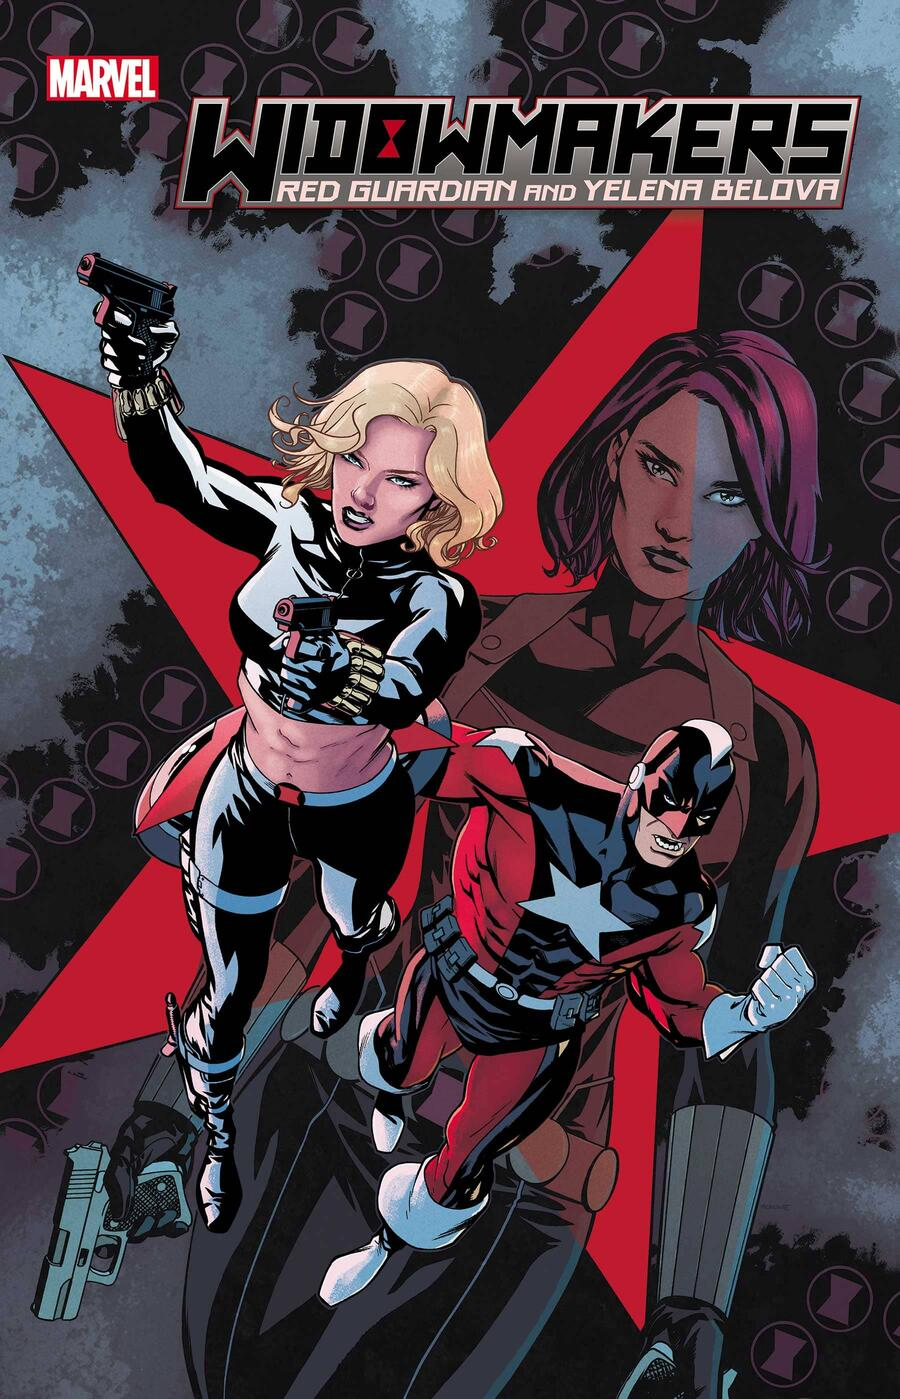 WIDOWMAKERS: RED GUARDIAN AND YELENA BELOVA #1 cover by Mike McKone and Chris O'Halloran